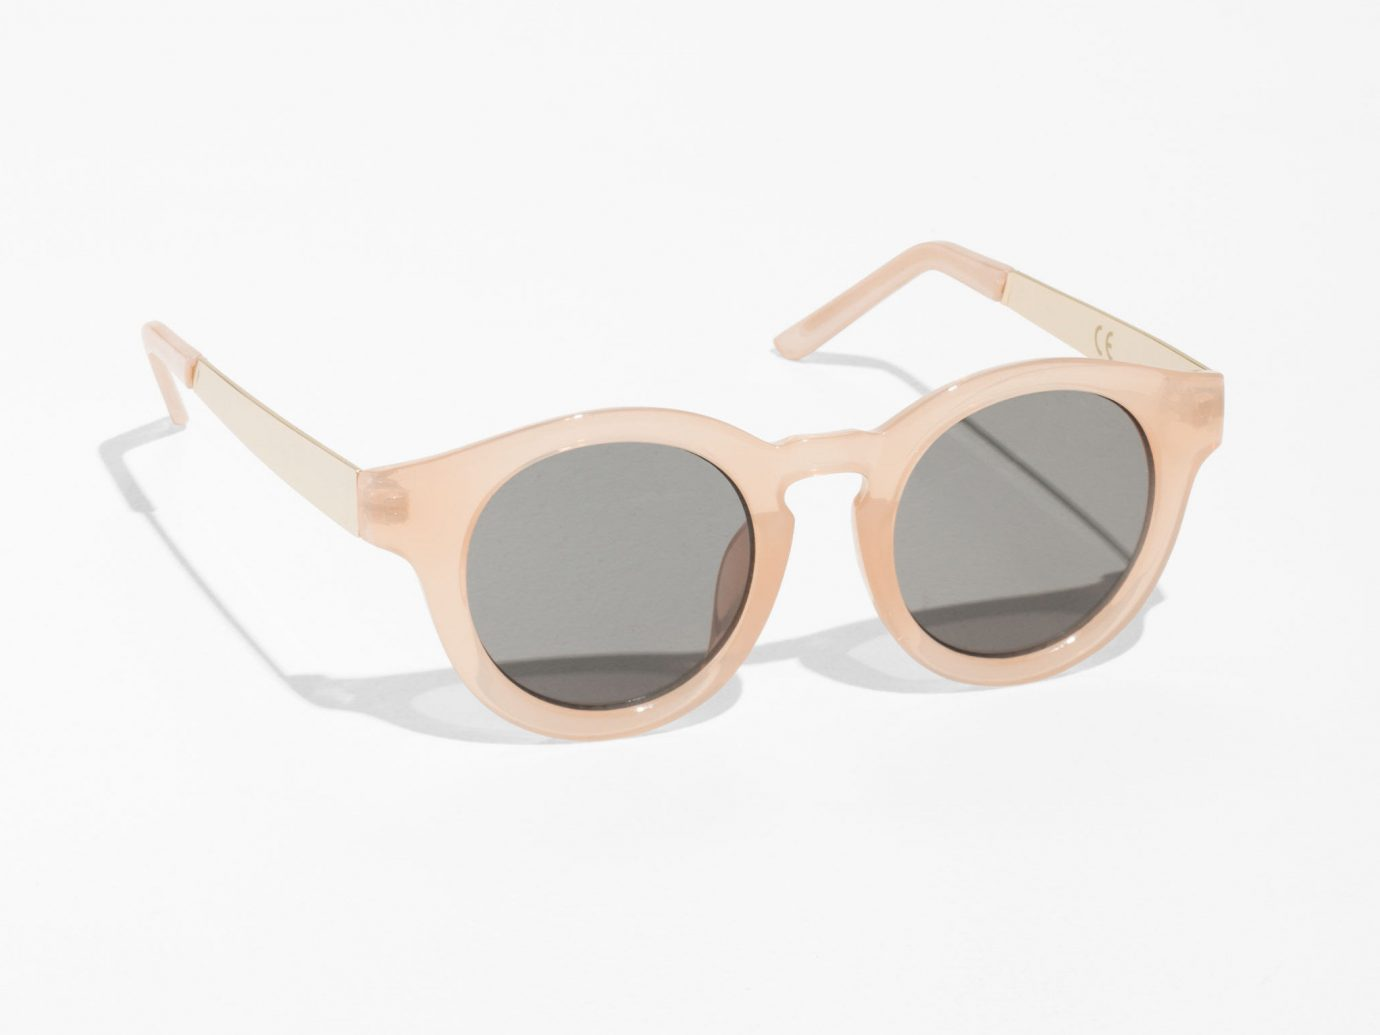 Girls Getaways Spring Travel Style + Design Summer Travel Travel Shop Trip Ideas Weekend Getaways eyewear spectacles sunglasses vision care glasses accessory brown beige goggles product design product font